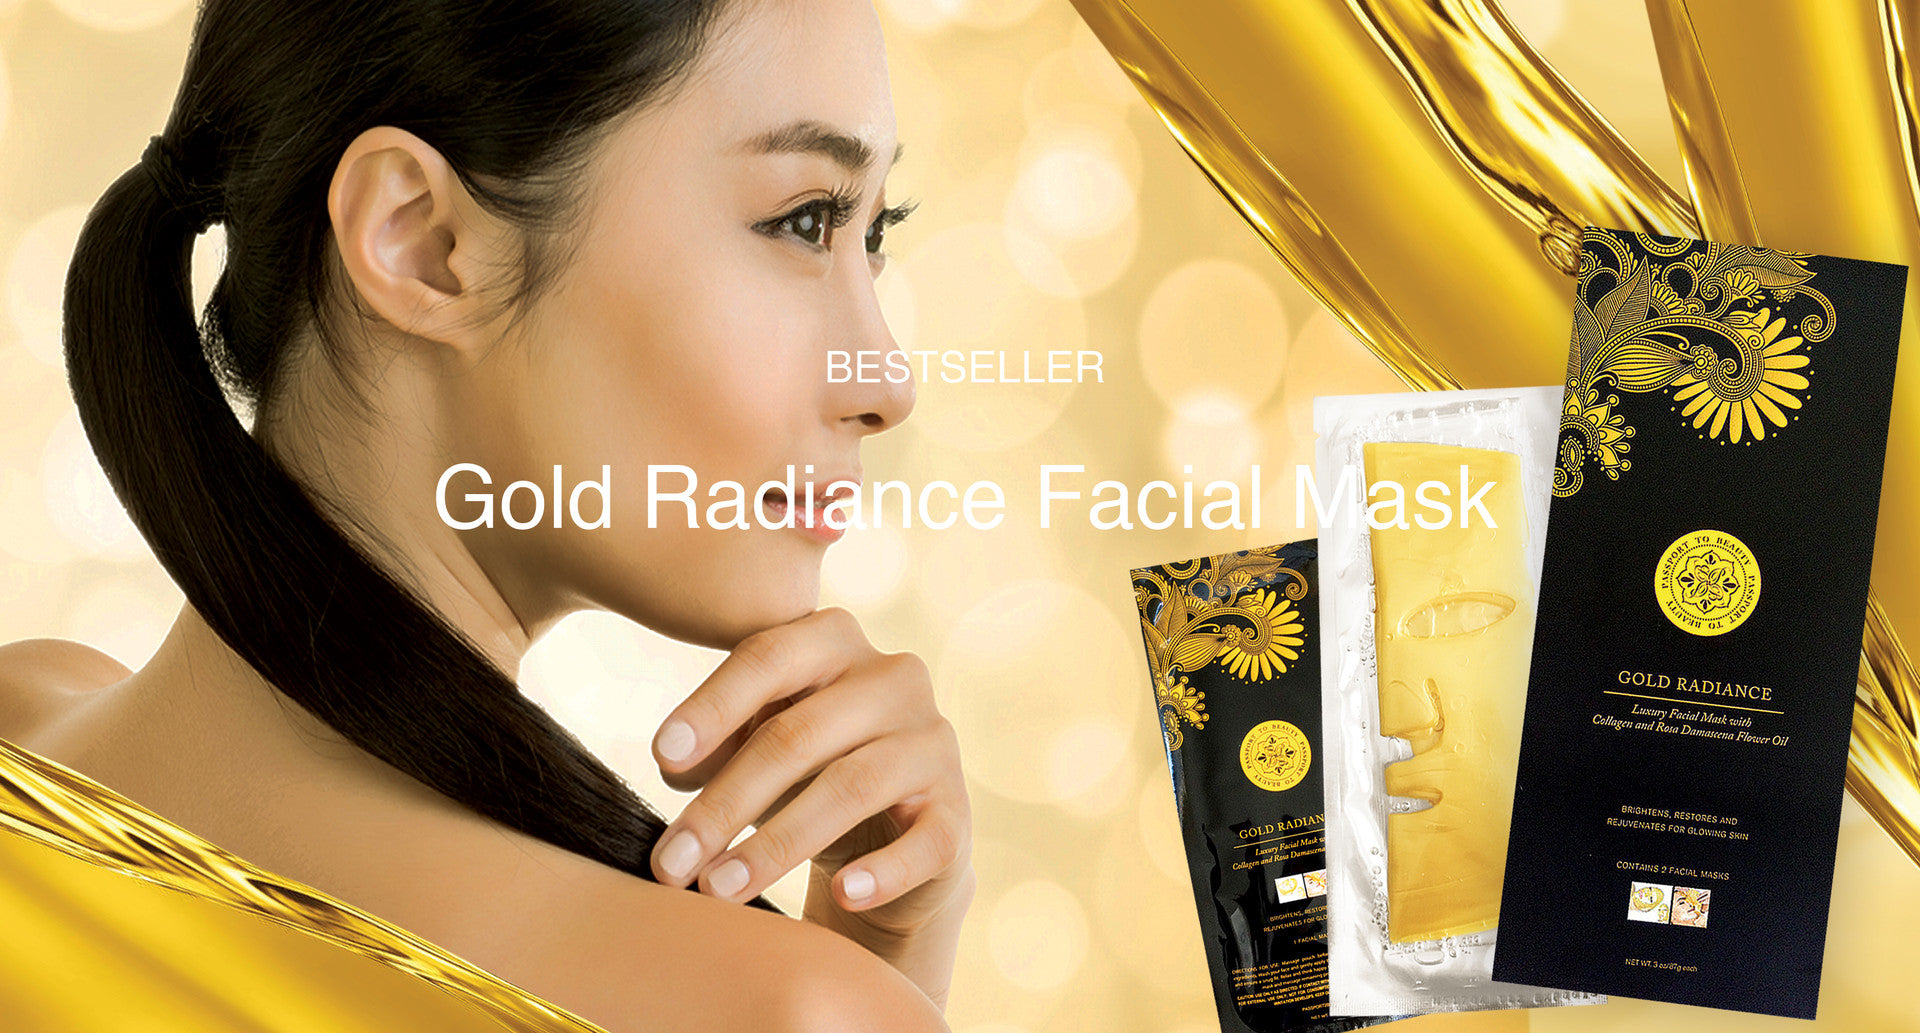 Gold Radiance Facial Mask